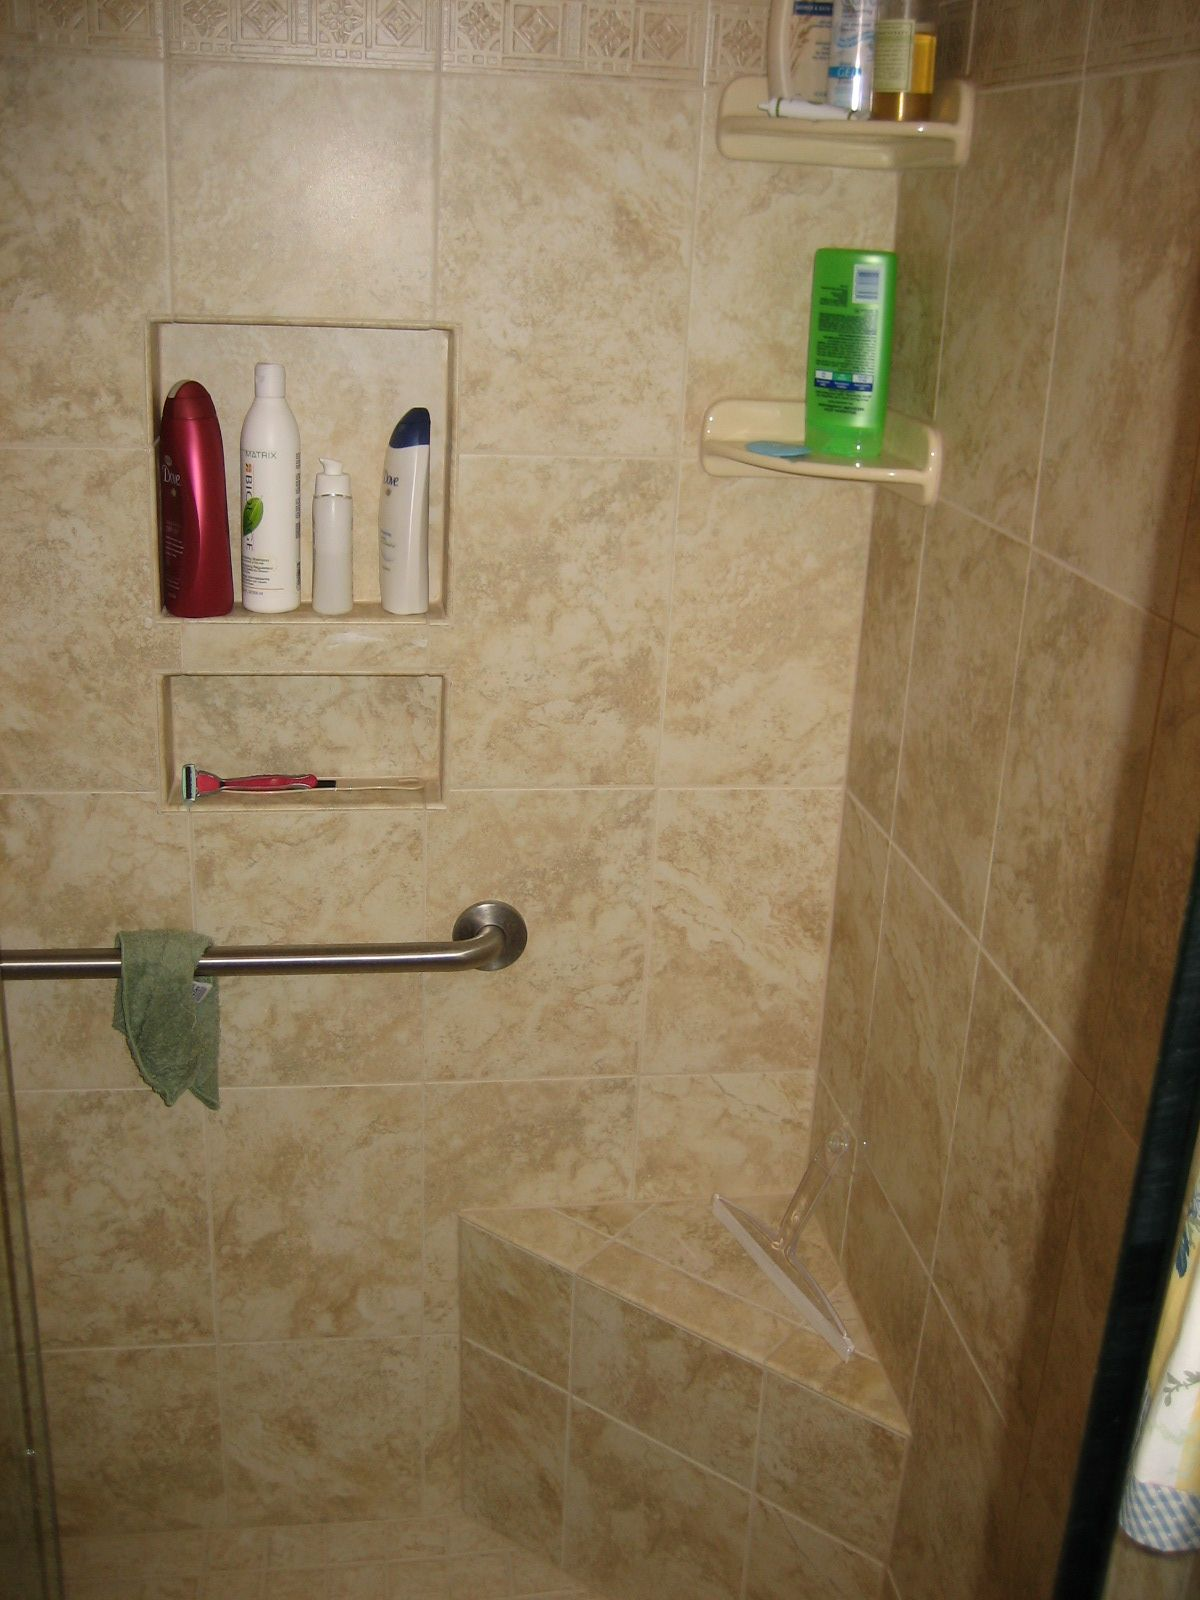 Custom Ceramic Shower Stall With Seat, Pigeon Hole For Shampoos And Corner  Shelves. Safety